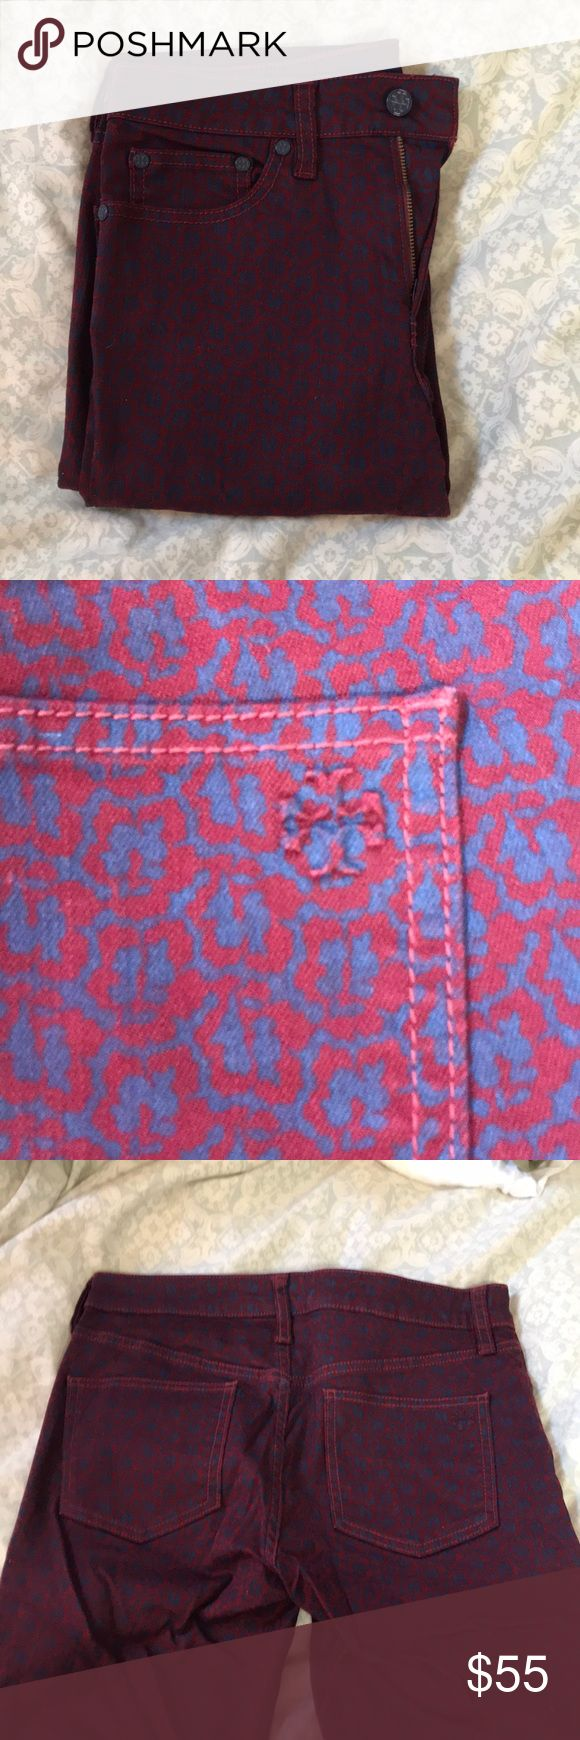 Tory Burch Printed  Skinny Jeans Dark red and navy printed Tory Burch skinny jeans. Size 27 only worn once. Cute fit and a great pair of jeans for the fall and winter. Feel free to bundle or make me an offer ! Tory Burch Jeans Skinny